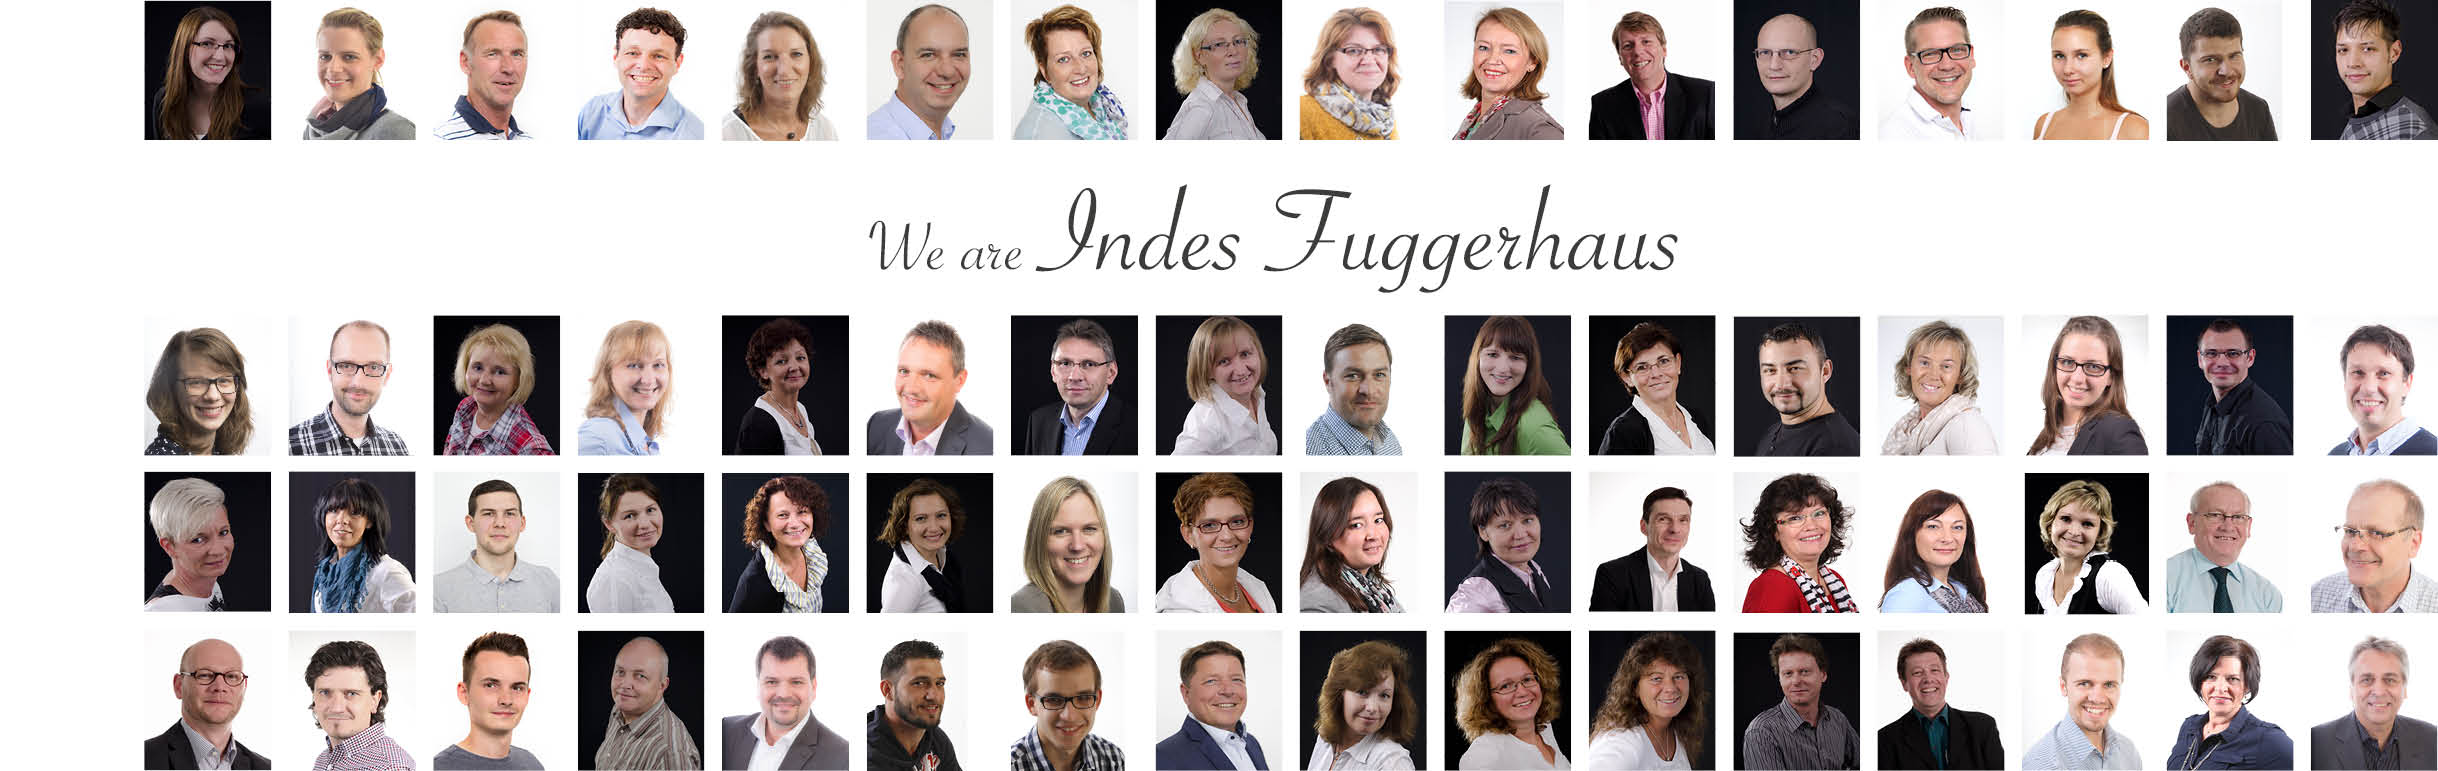 Team Indes Fuggerhaus